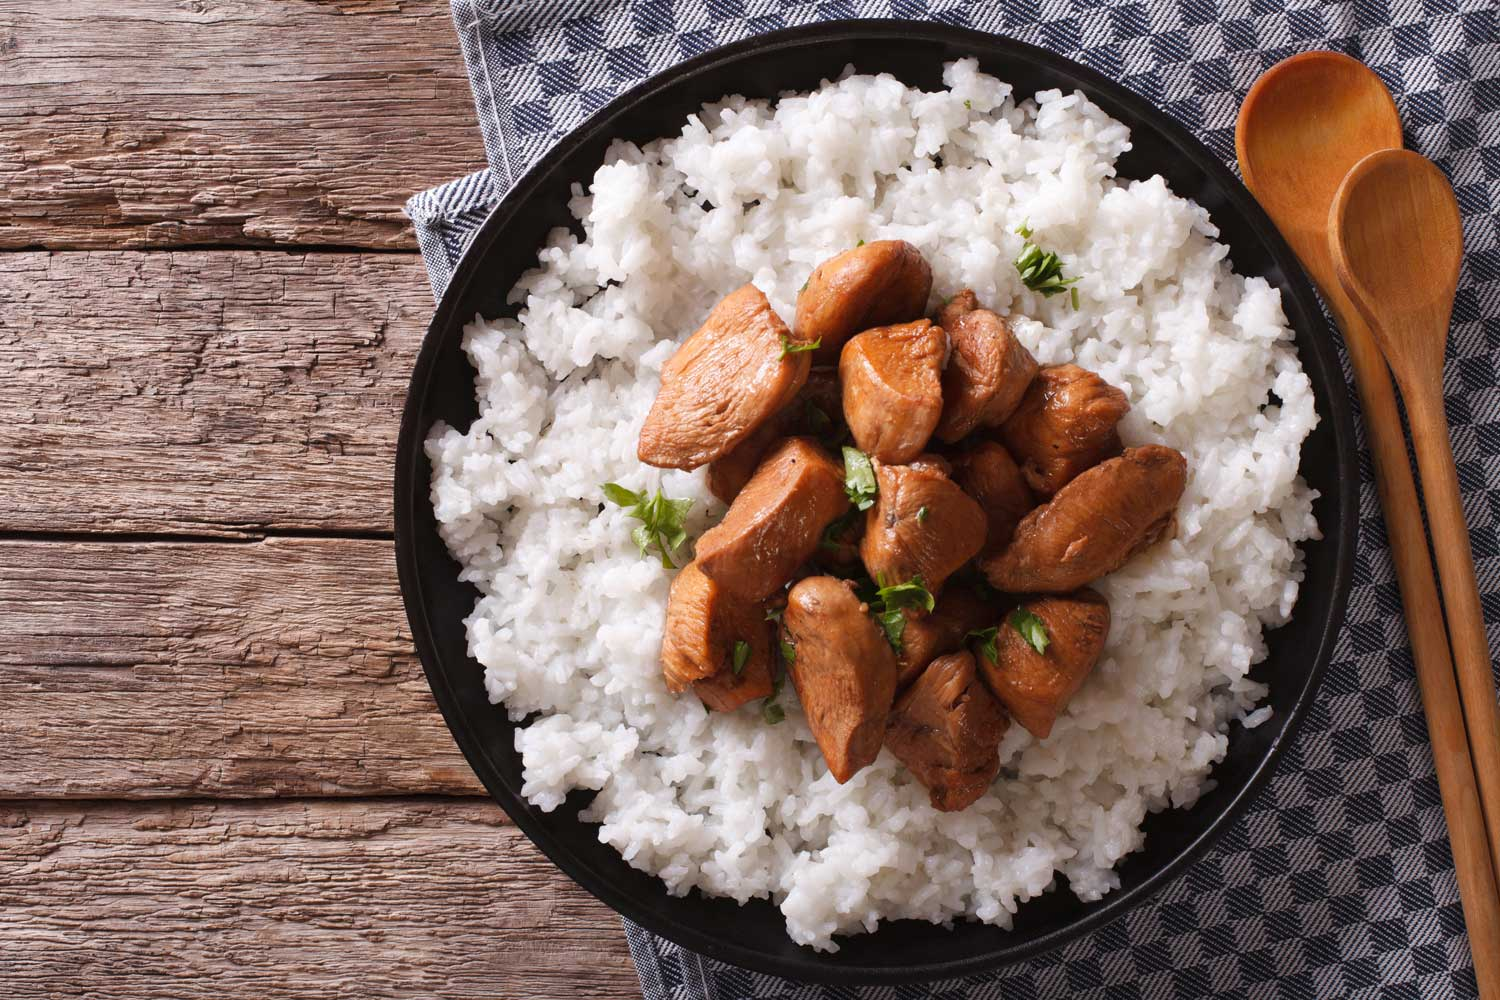 Seasoned Chunks of Meat Over a Bed of White Rice